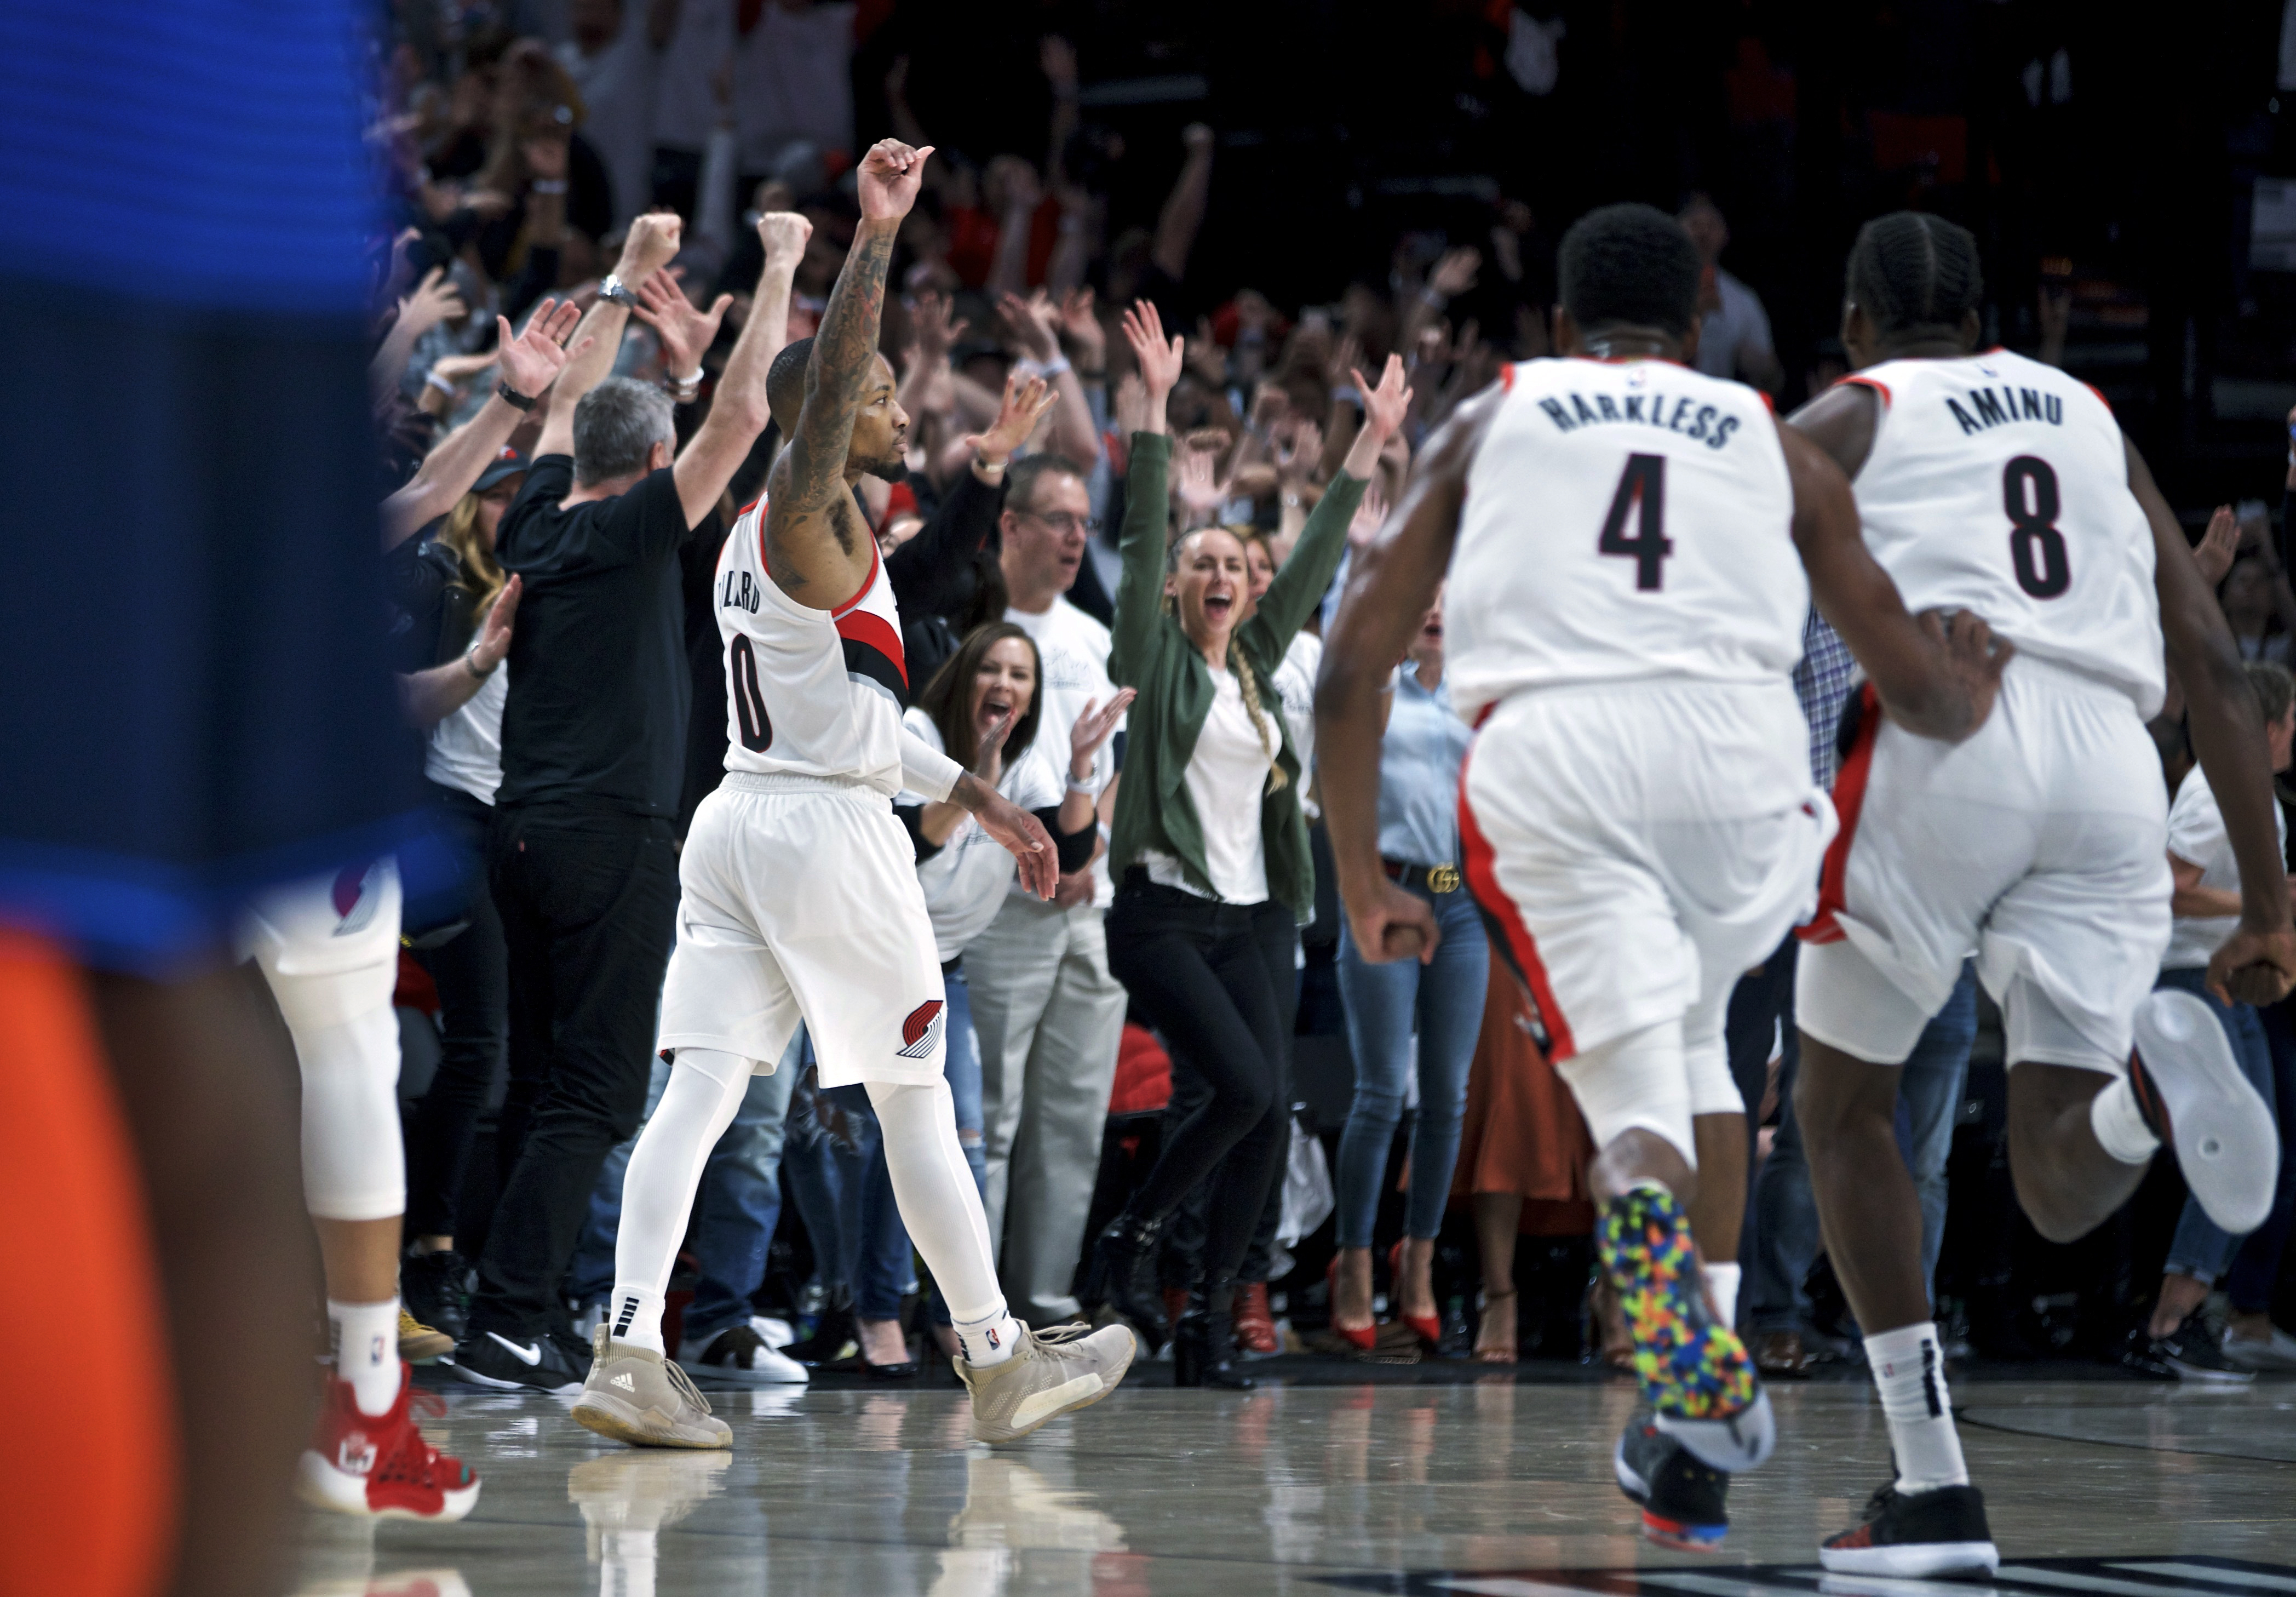 914ab01195a Damian Lillard s dagger gives Blazers  last word  and ends Thunder s season  - The Washington Post